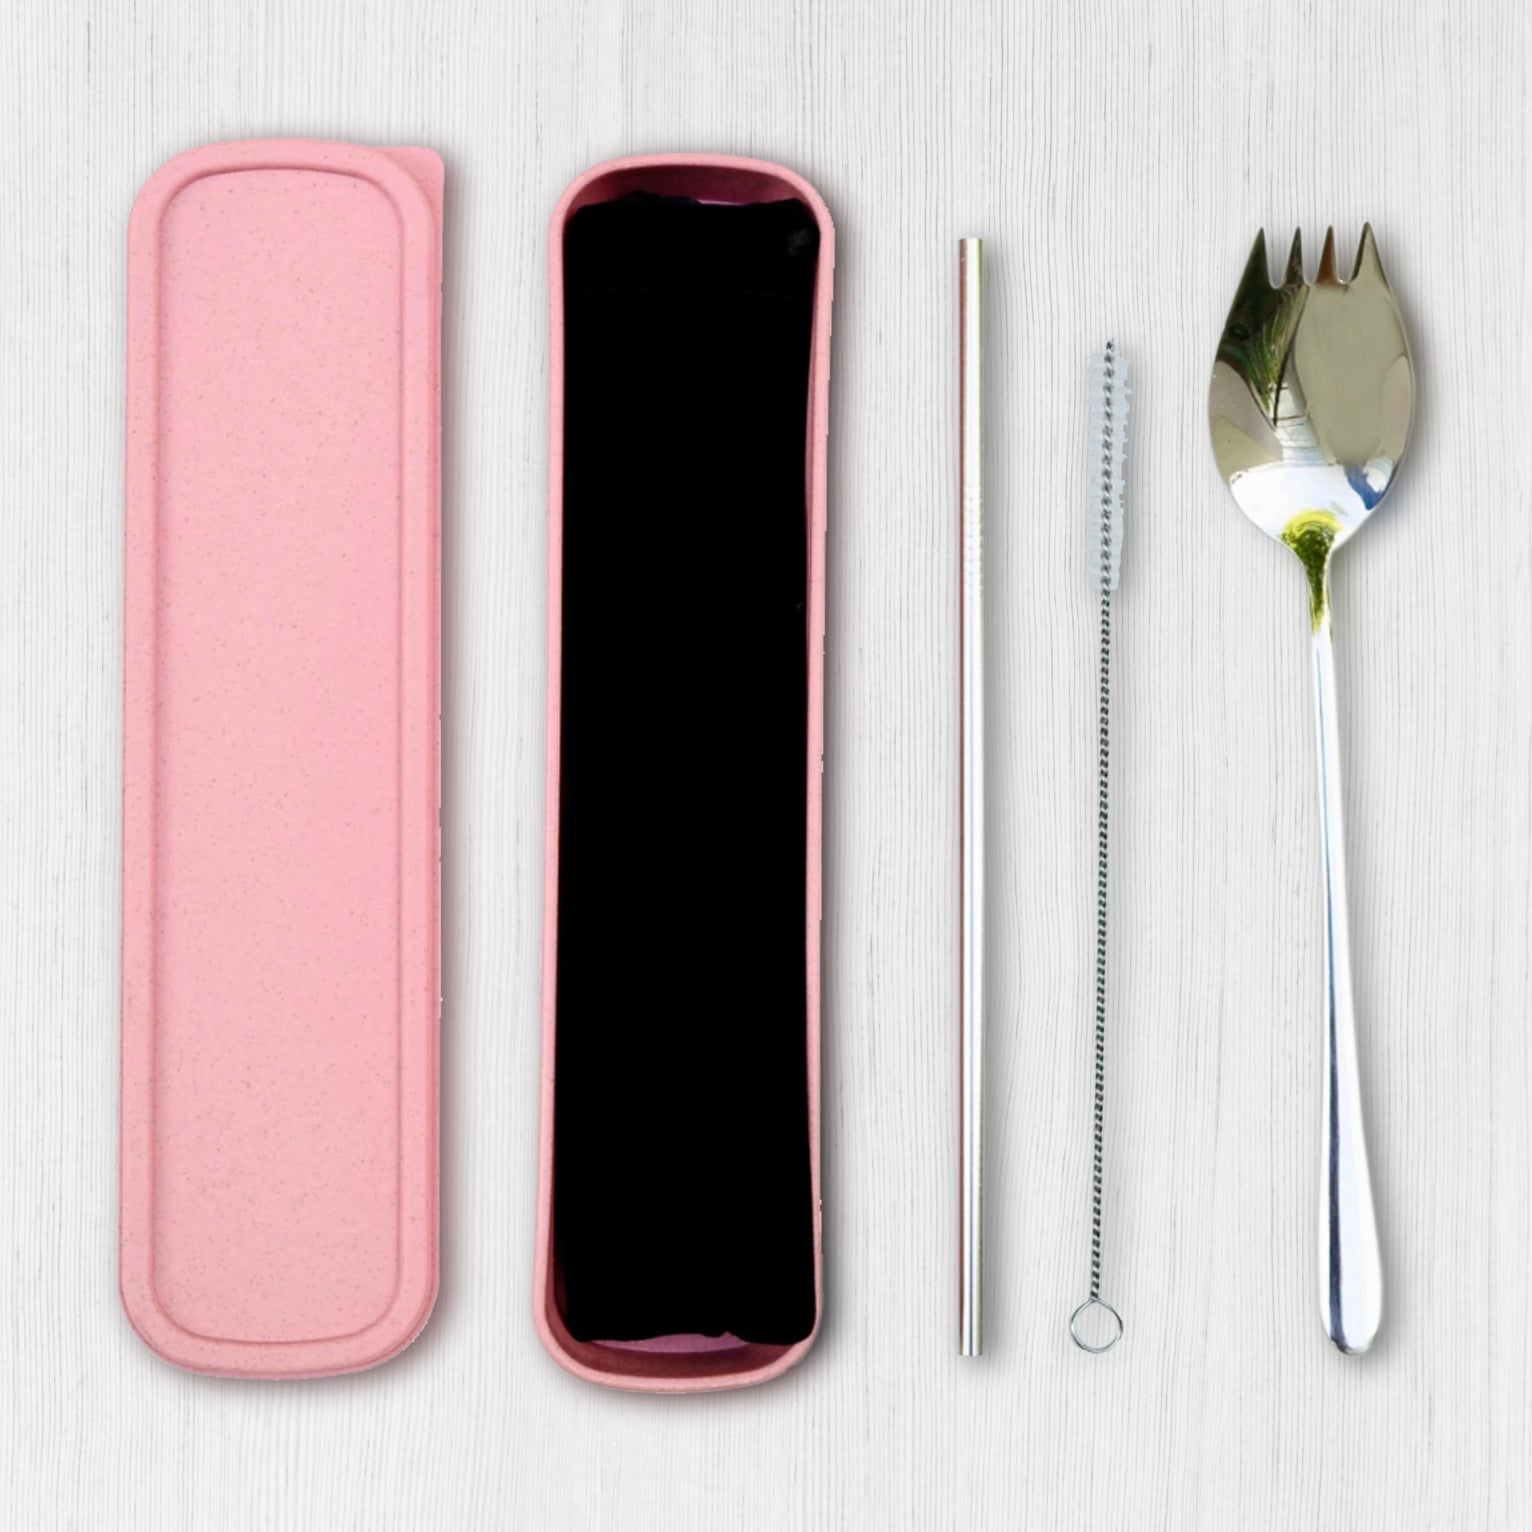 304 Stainless Steel 2 in 1 Salad Spoon Fork, Drinking Straw Gift Box Set